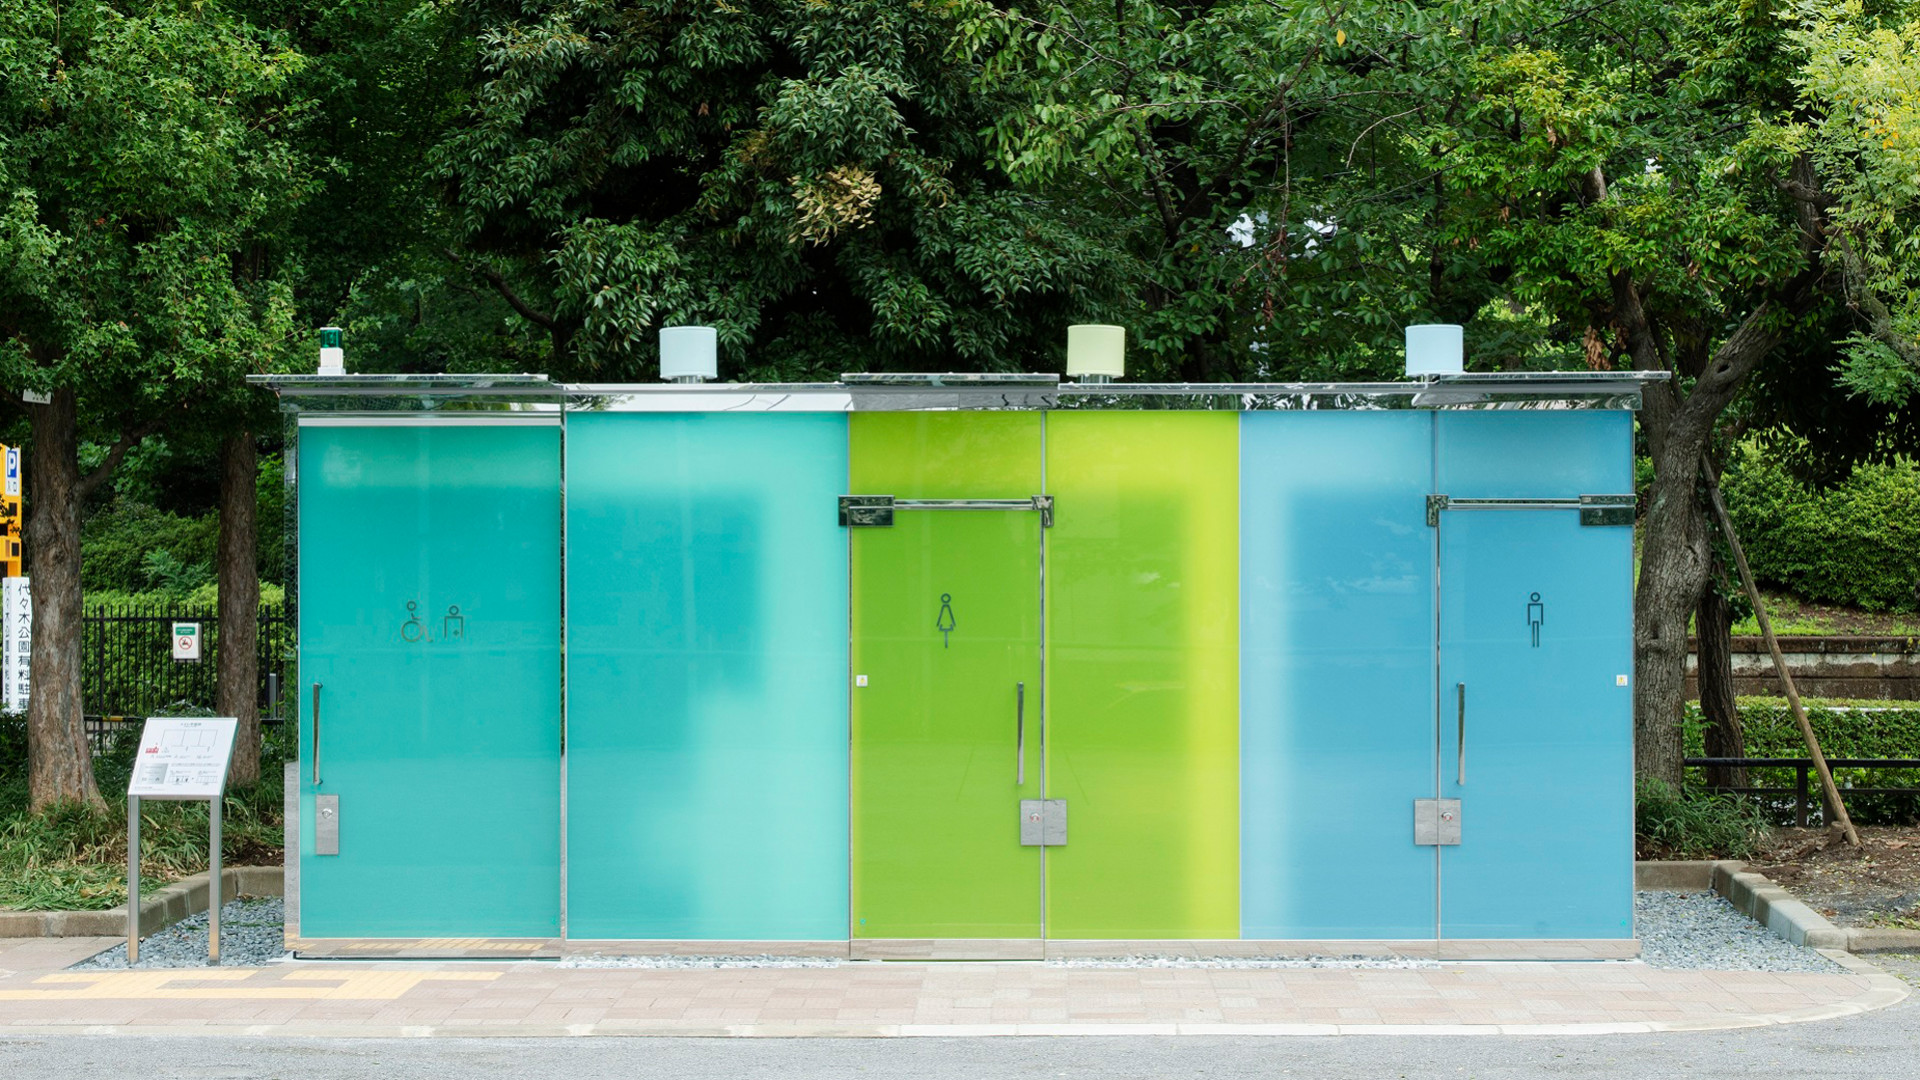 Japan's latest tourist attraction: Tokyo's transparent public toilets